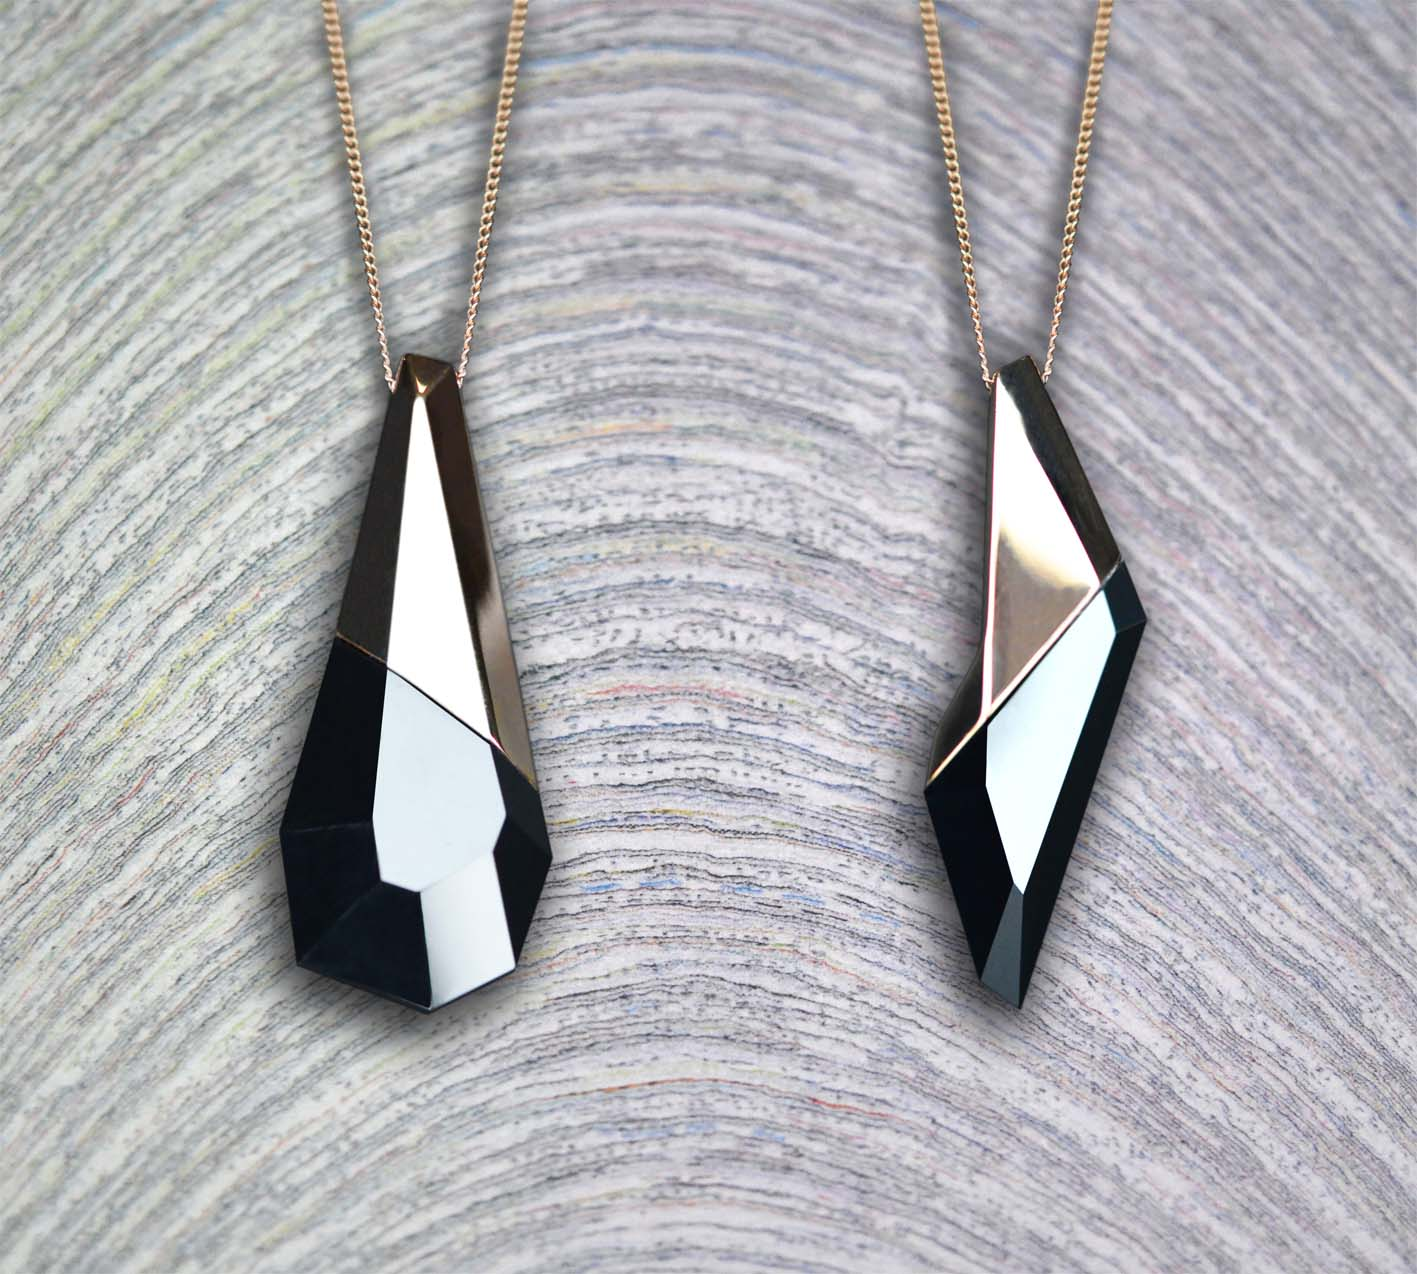 Product Design - photos - ONYX Jewellery